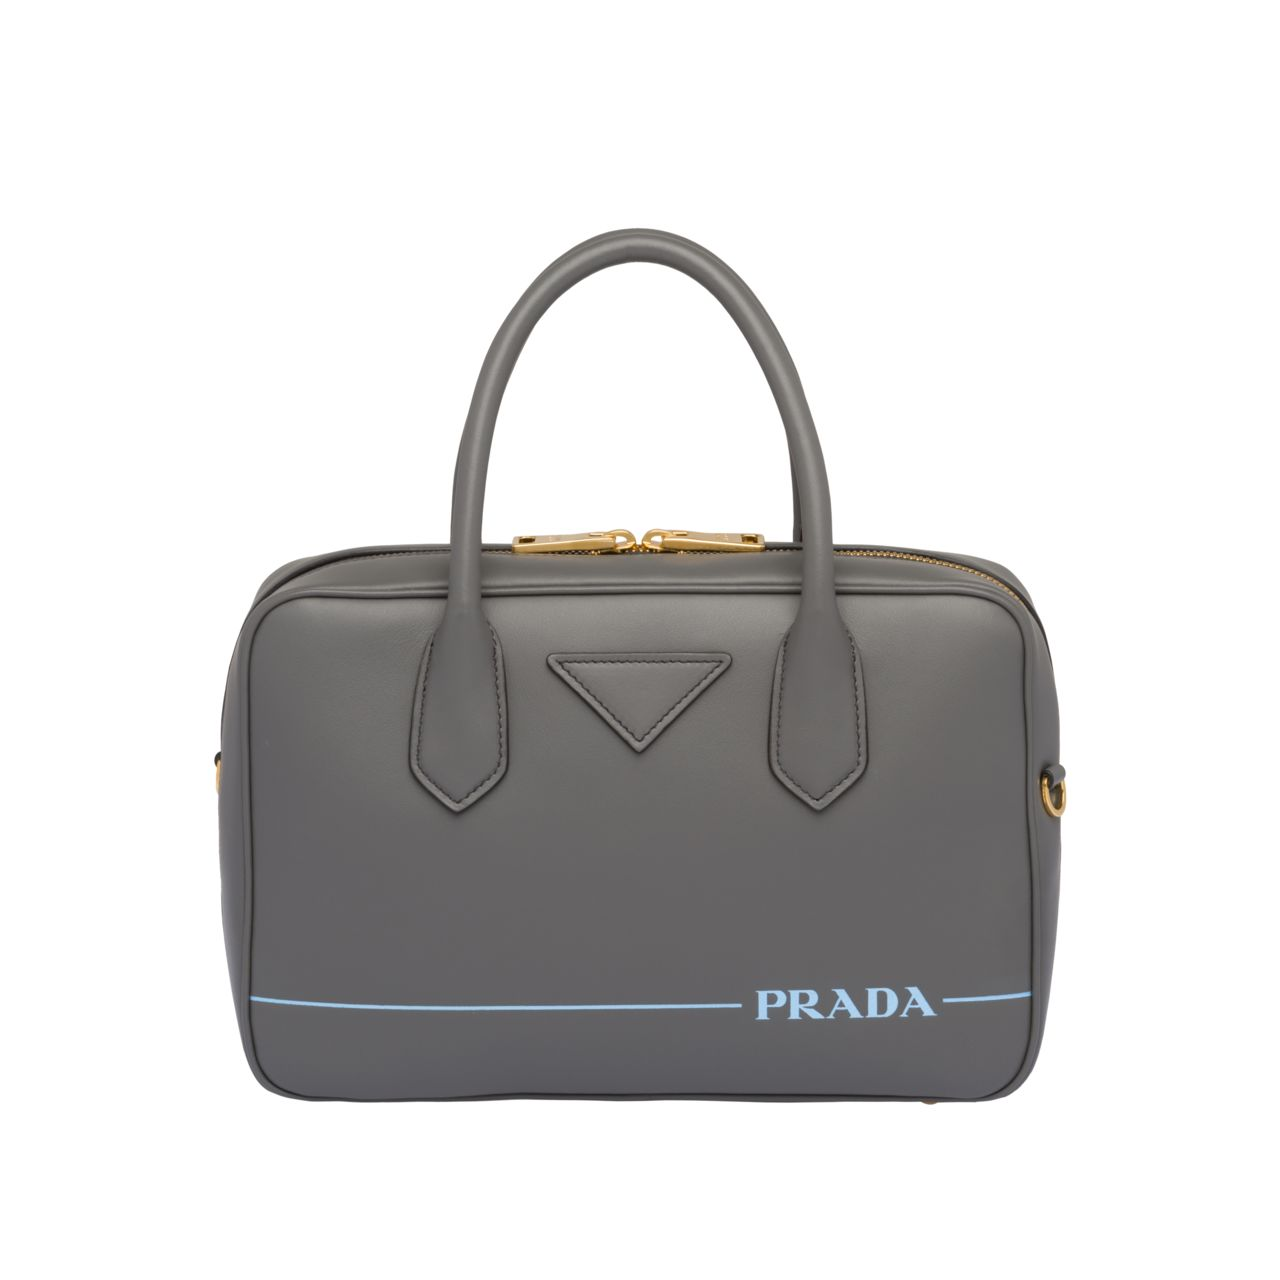 ae442330dcdc Prada Fall/Winter 2018 Bag Collection Featuring The Mirage Bag ...